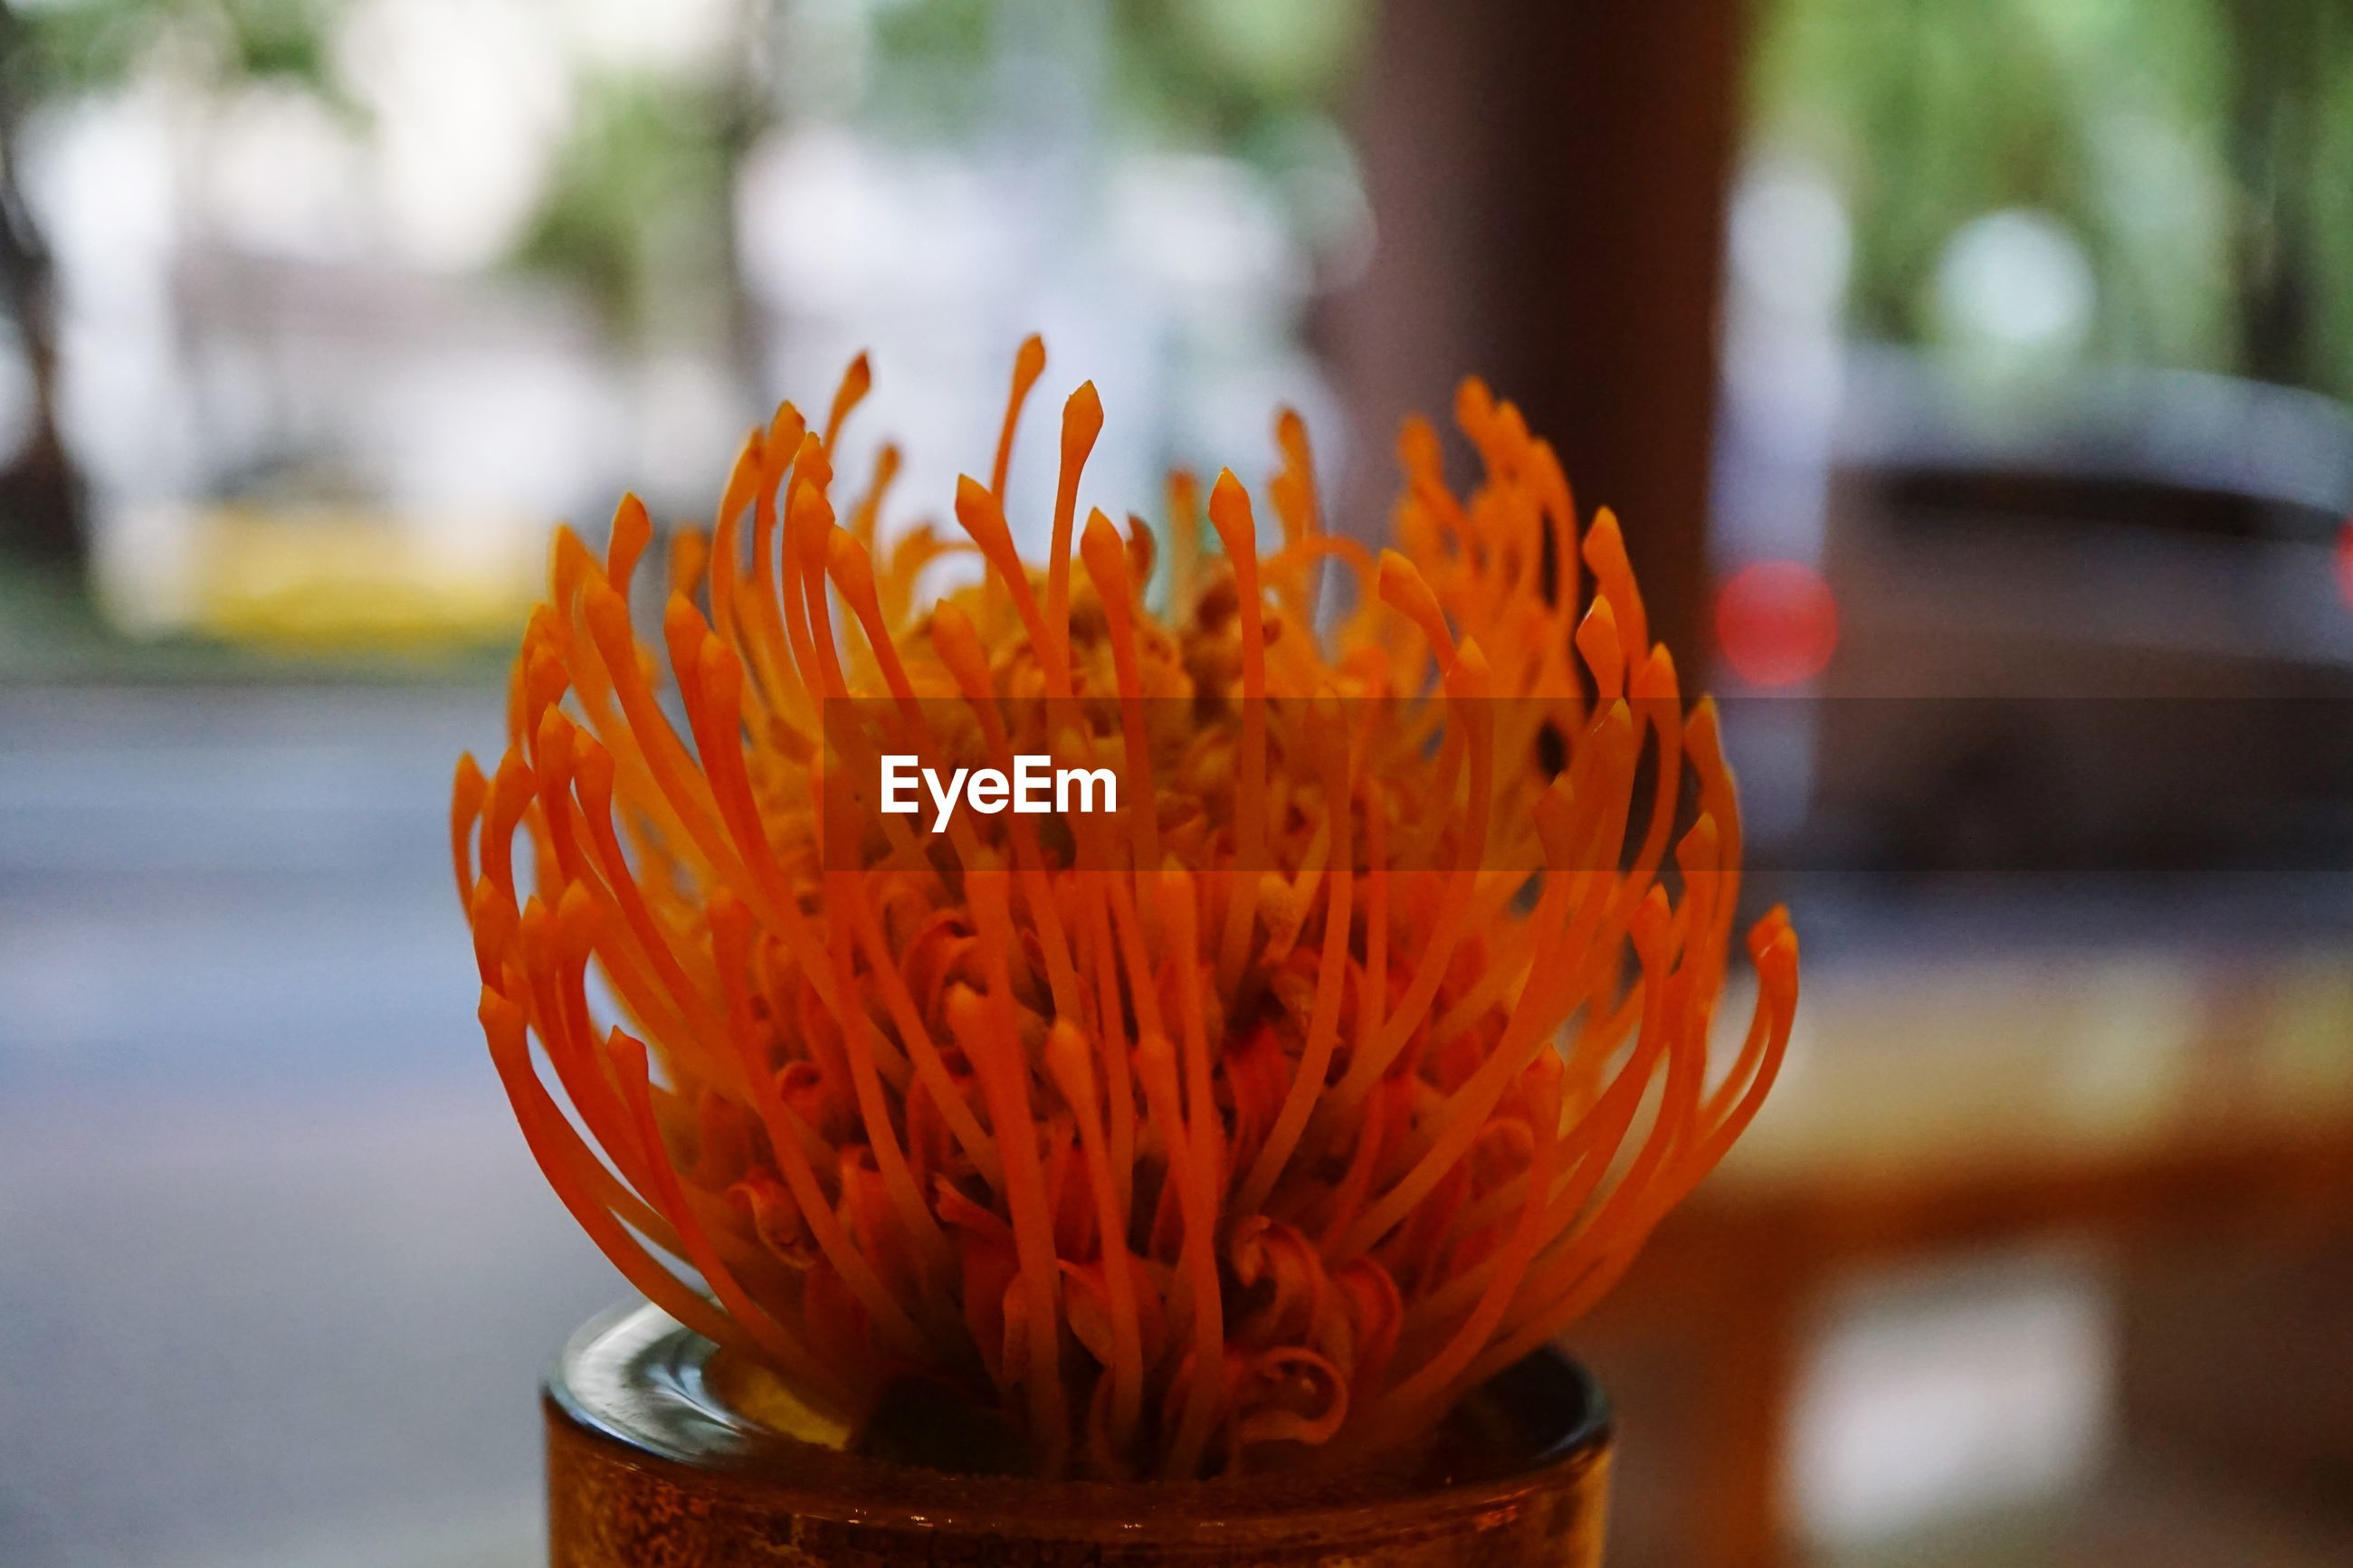 flowering plant, flower, focus on foreground, close-up, orange color, fragility, vulnerability, flower head, plant, freshness, petal, day, inflorescence, beauty in nature, no people, nature, outdoors, growth, selective focus, botany, pollen, orange